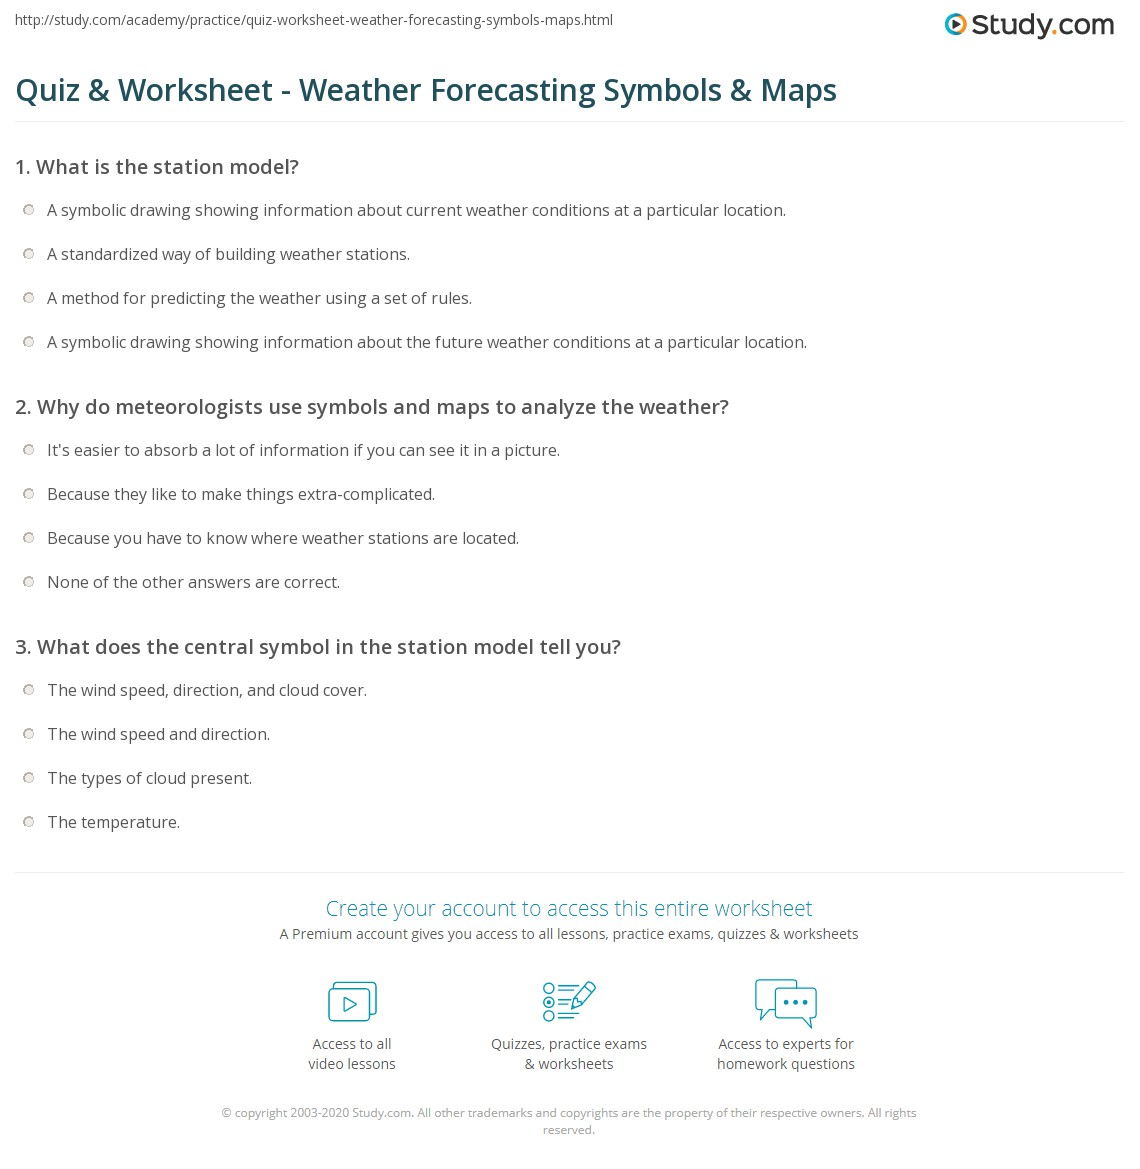 worksheet Weather Map Symbols Worksheet quiz worksheet weather forecasting symbols maps study com print used to analyze worksheet